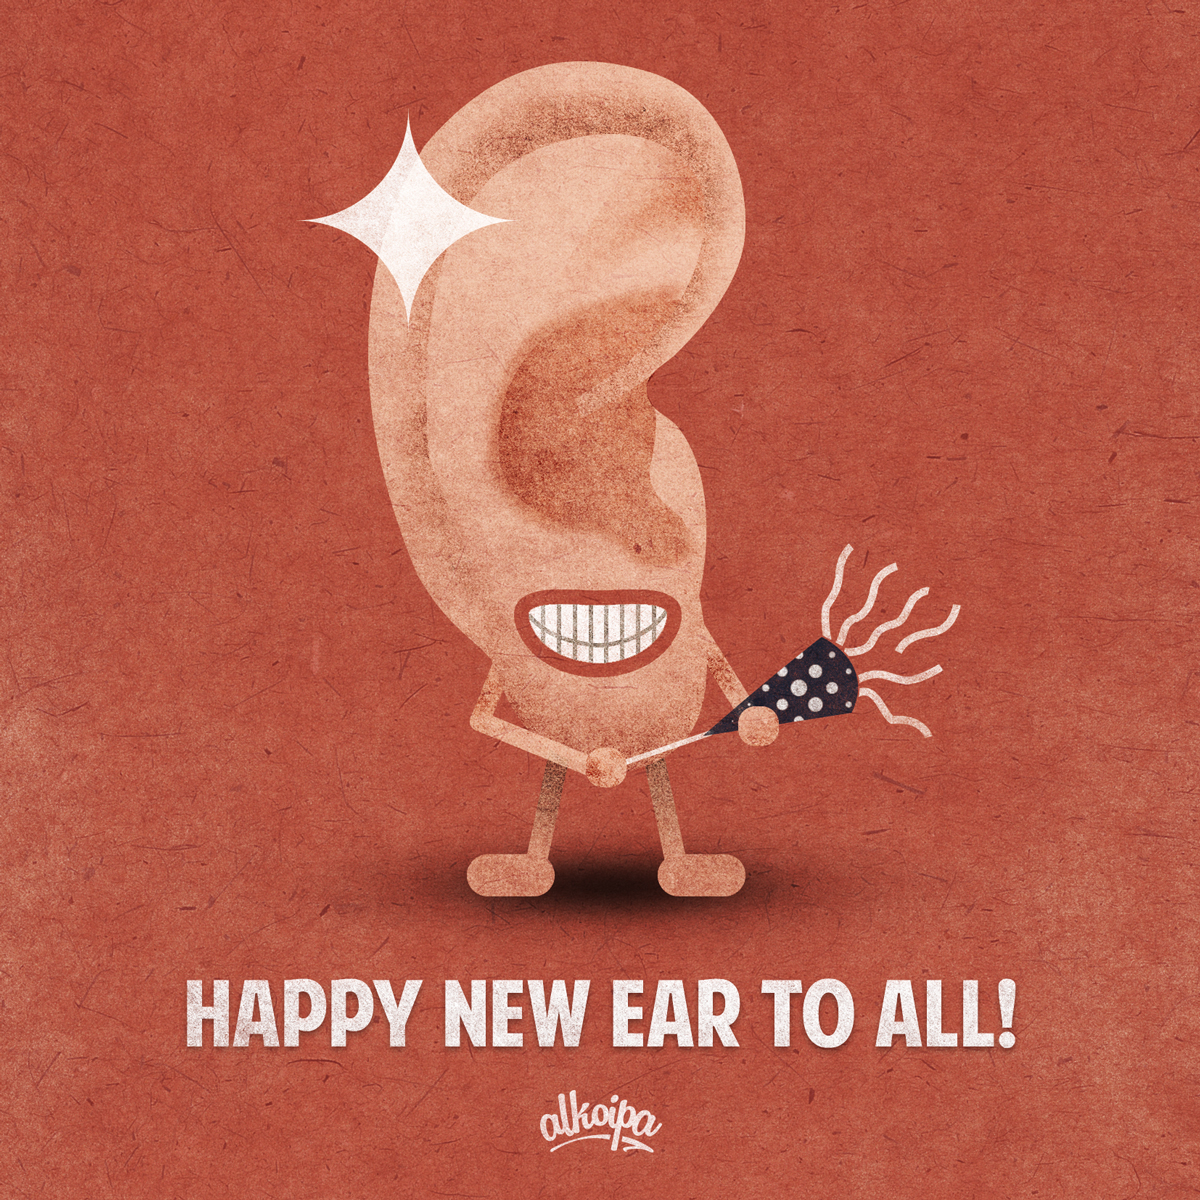 happy new ear to all - alkoipa